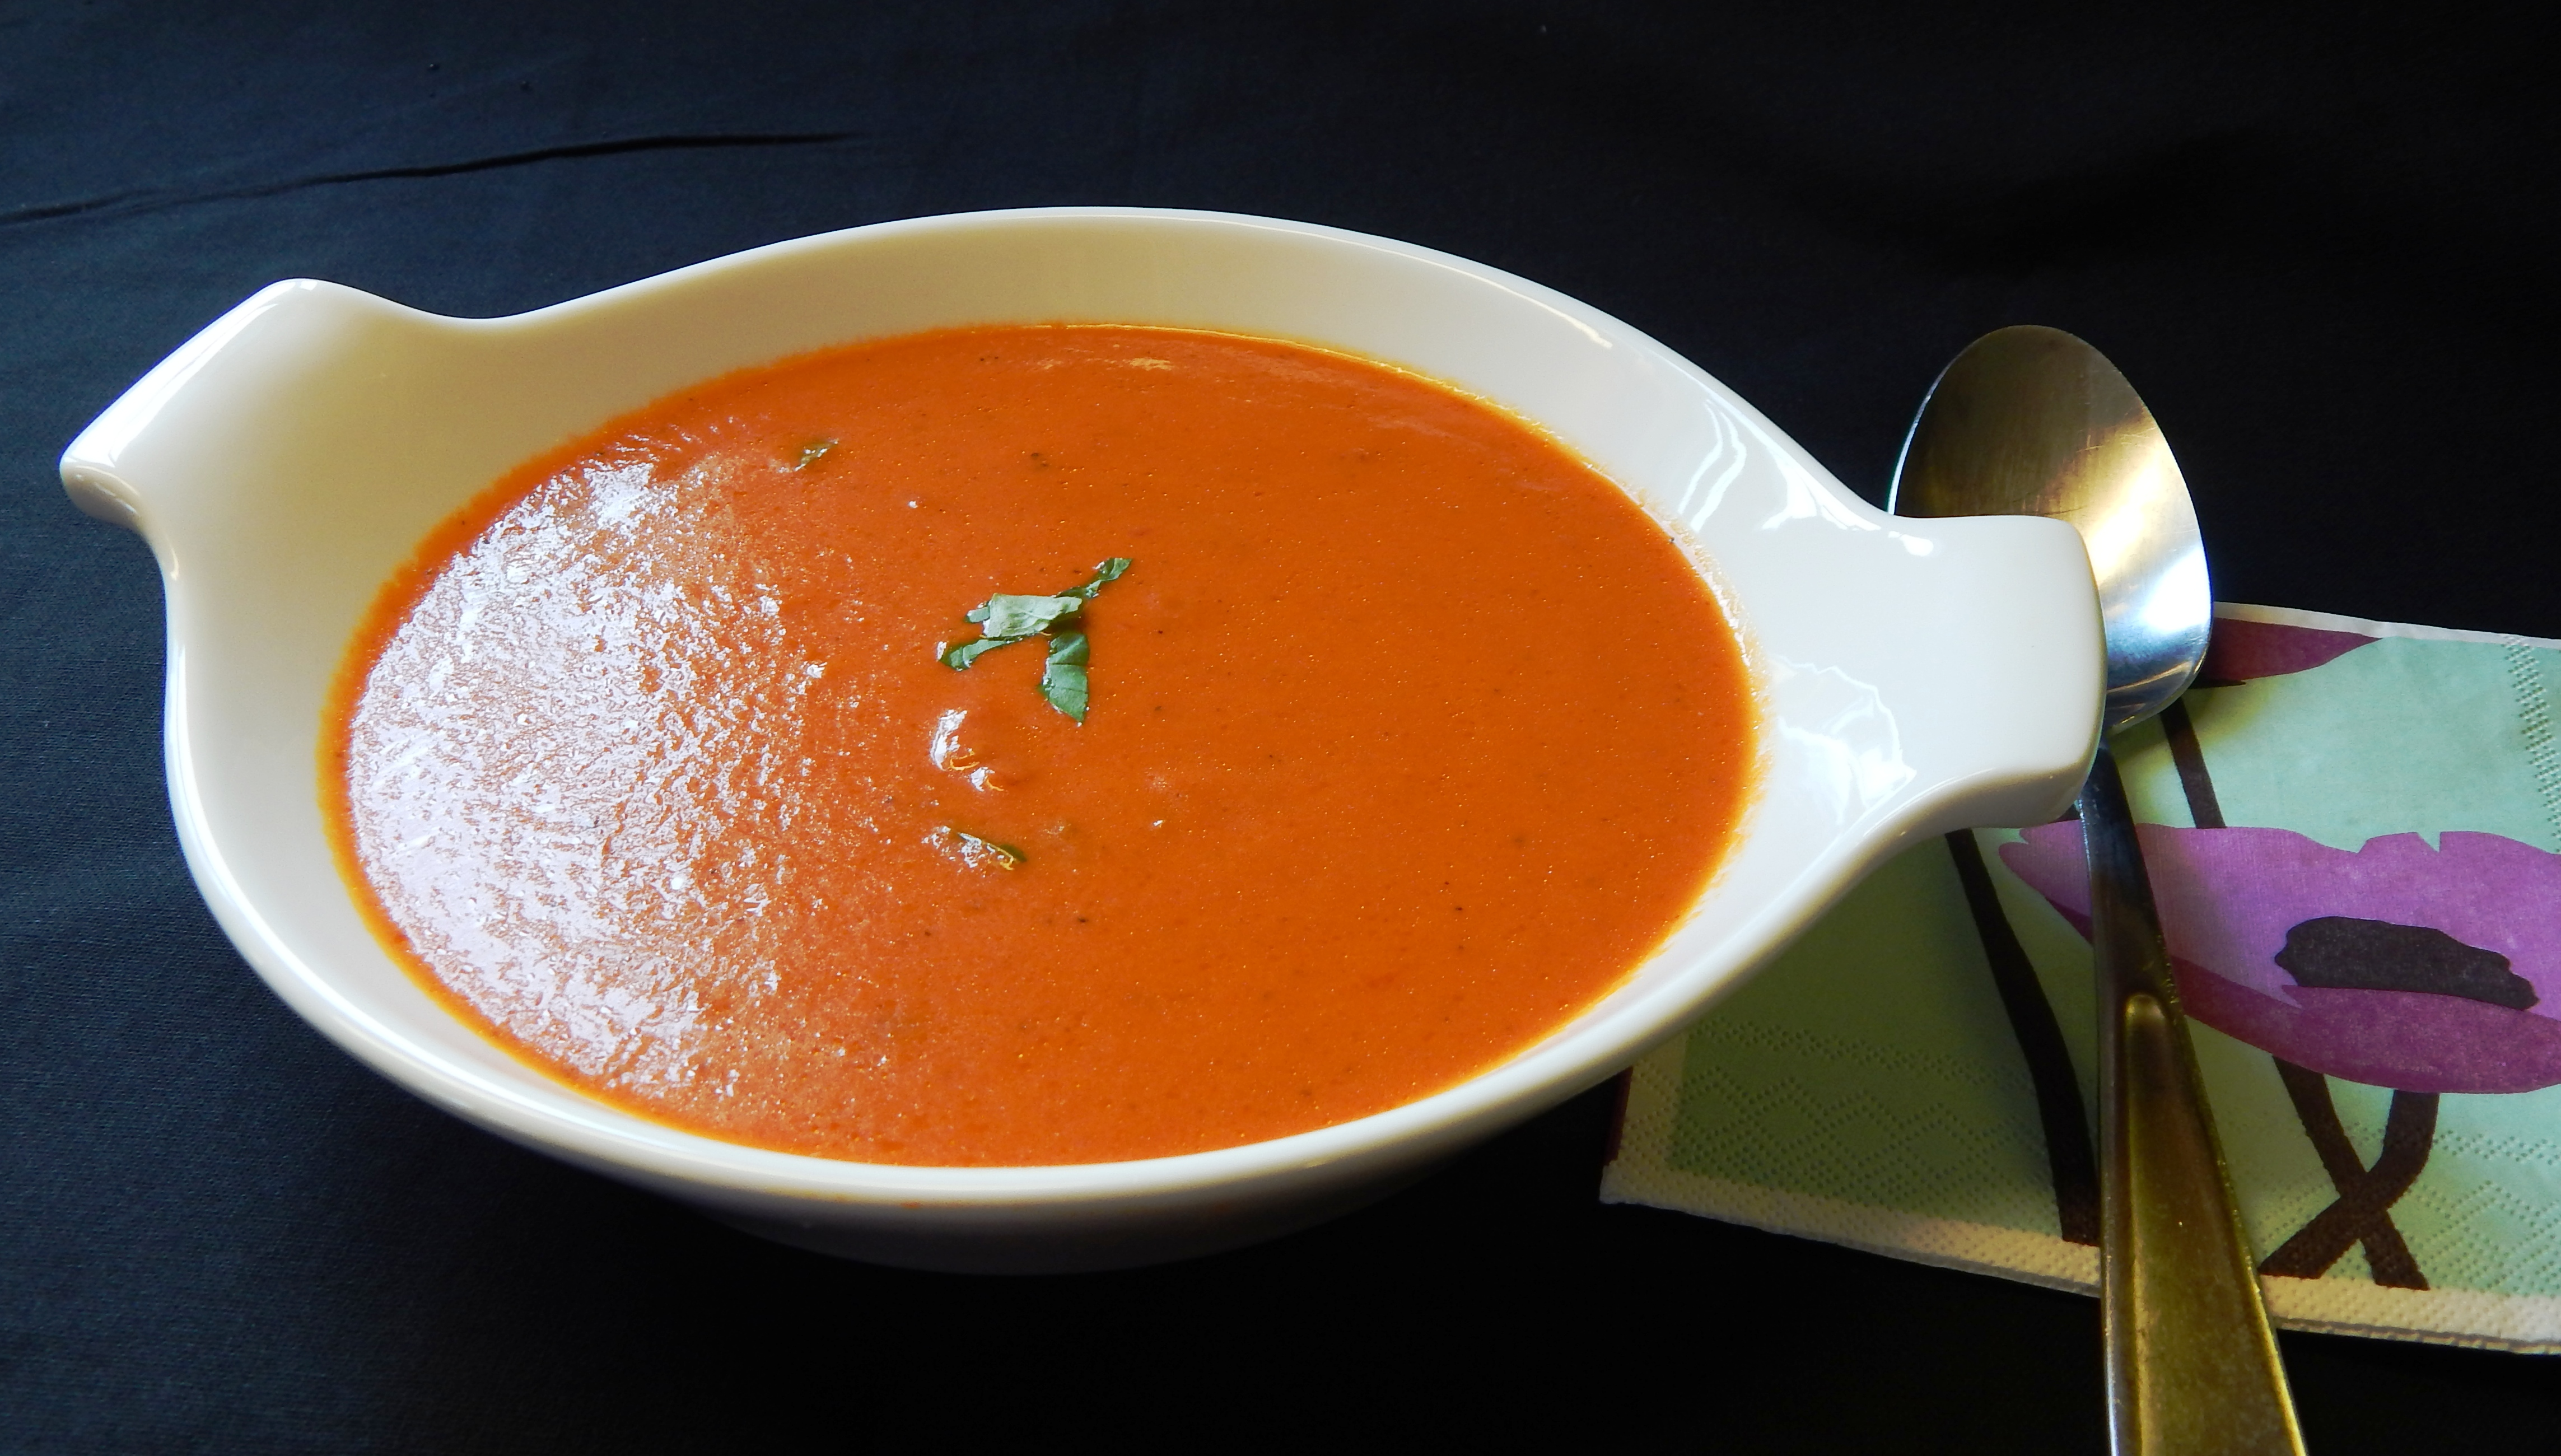 ... 25, 2014 at 4573 × 2600 in Crock Pot Cream of Tomato Basil Soup